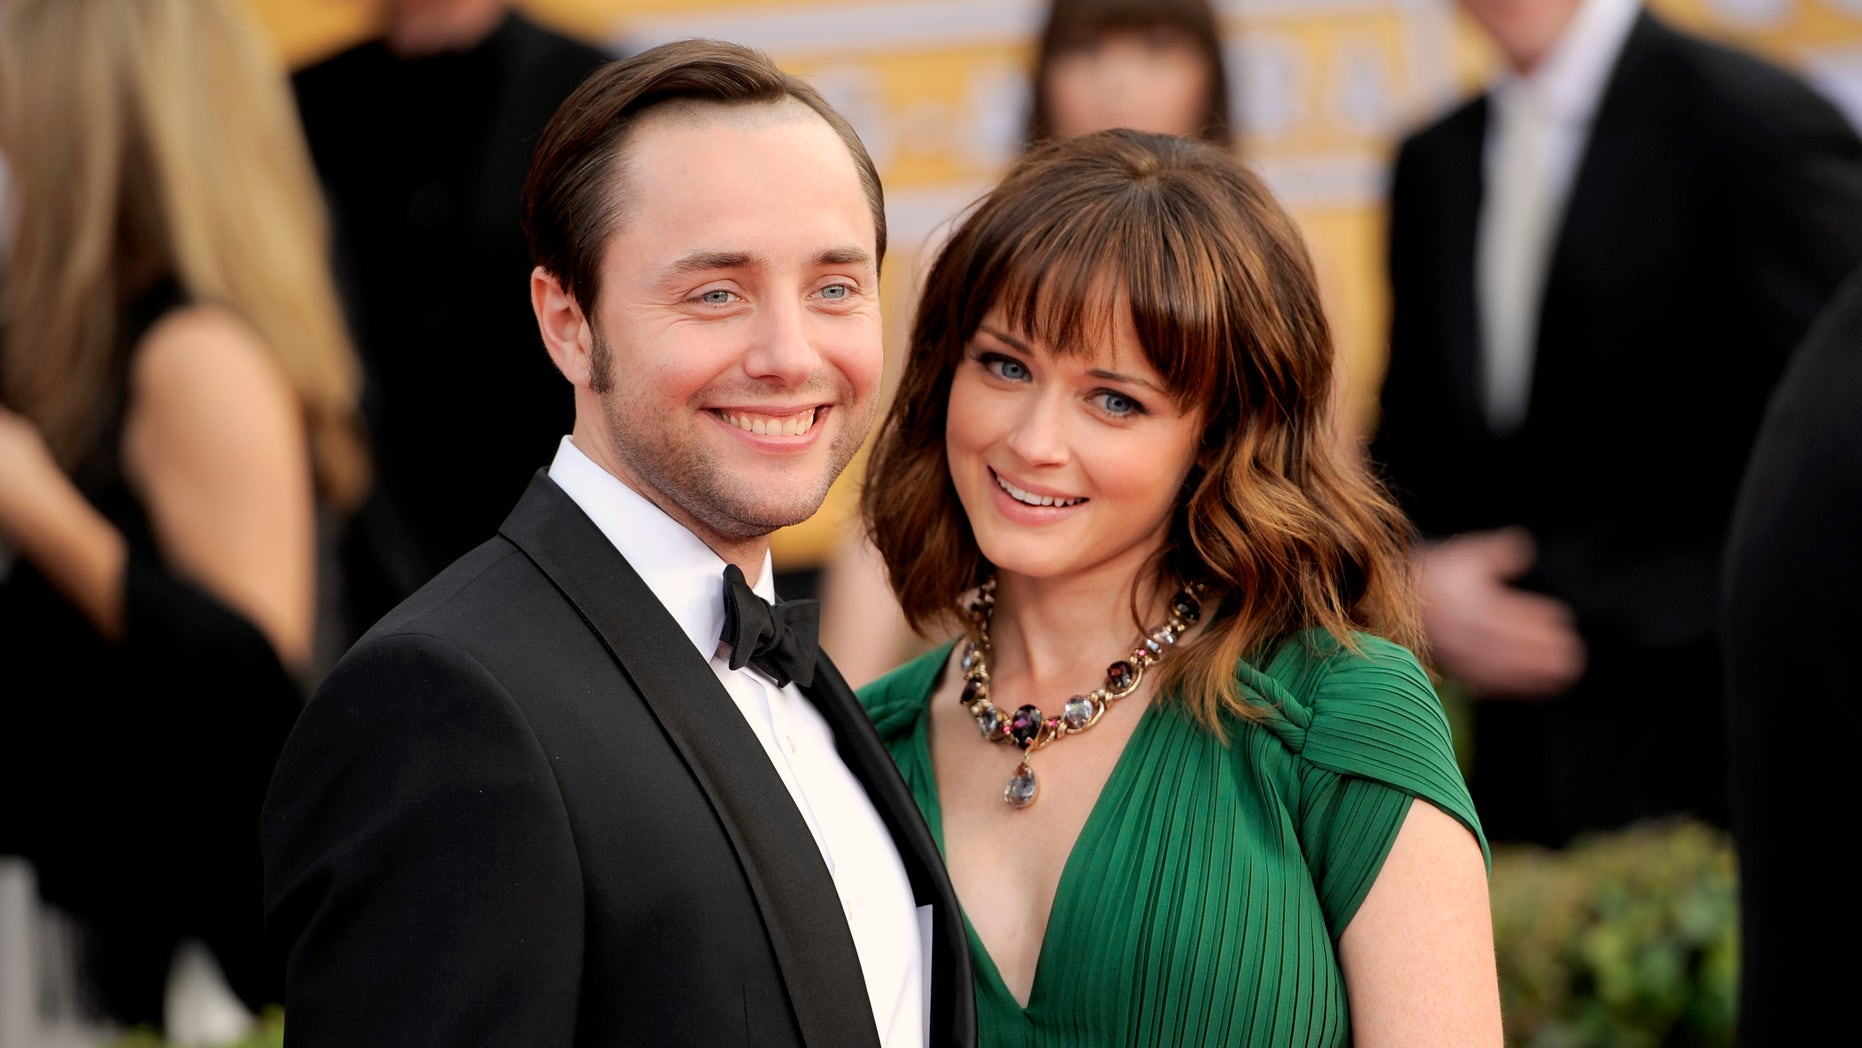 Jan. 27, 2013: This file photo shows actors Vincent Kartheiser, left, and Alexis Bledel at the 19th Annual Screen Actors Guild Awards at the Shrine Auditorium in Los Angeles.